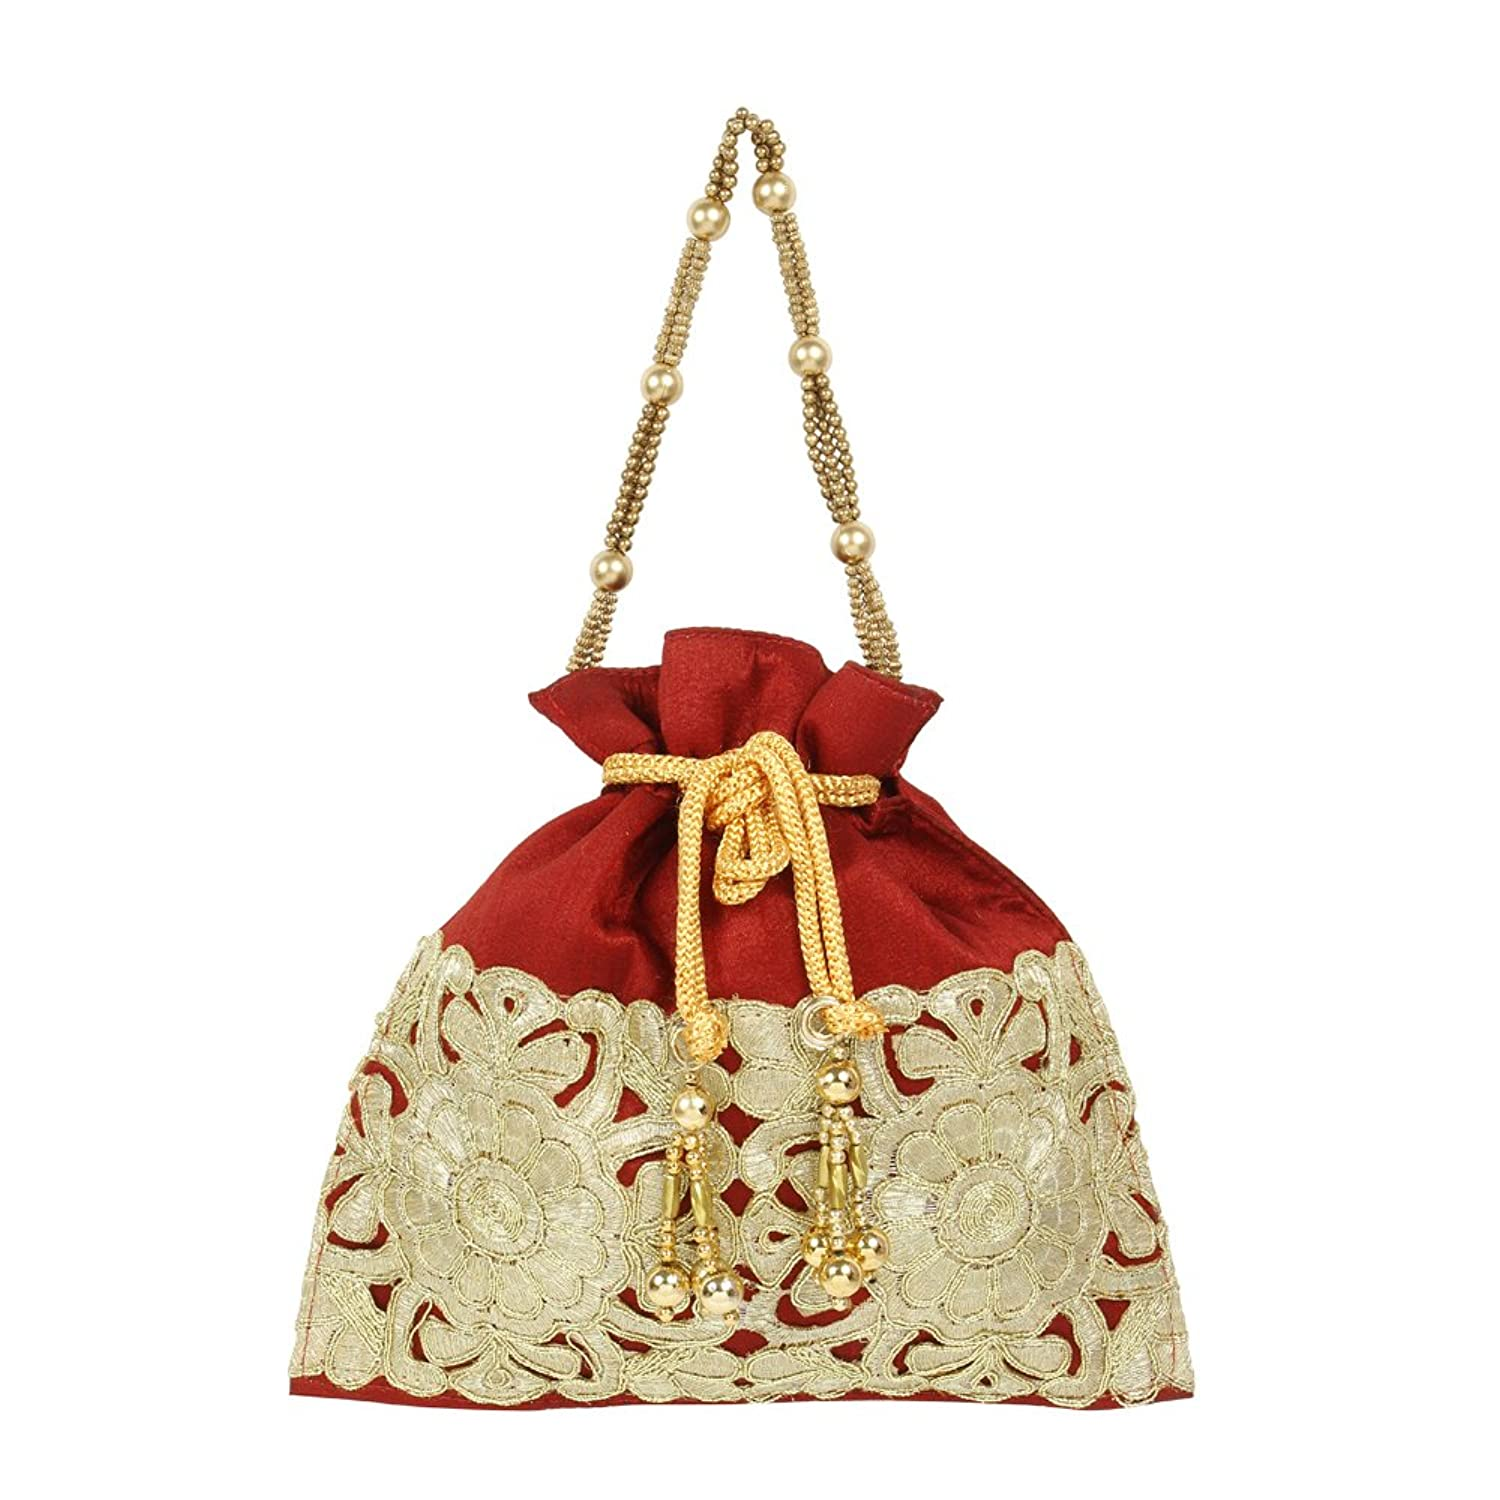 Vintage & Retro Handbags, Purses, Wallets, Bags Purse Collection Maroon Colour Beautiful Drawstring Potli Purse For Womens $14.00 AT vintagedancer.com